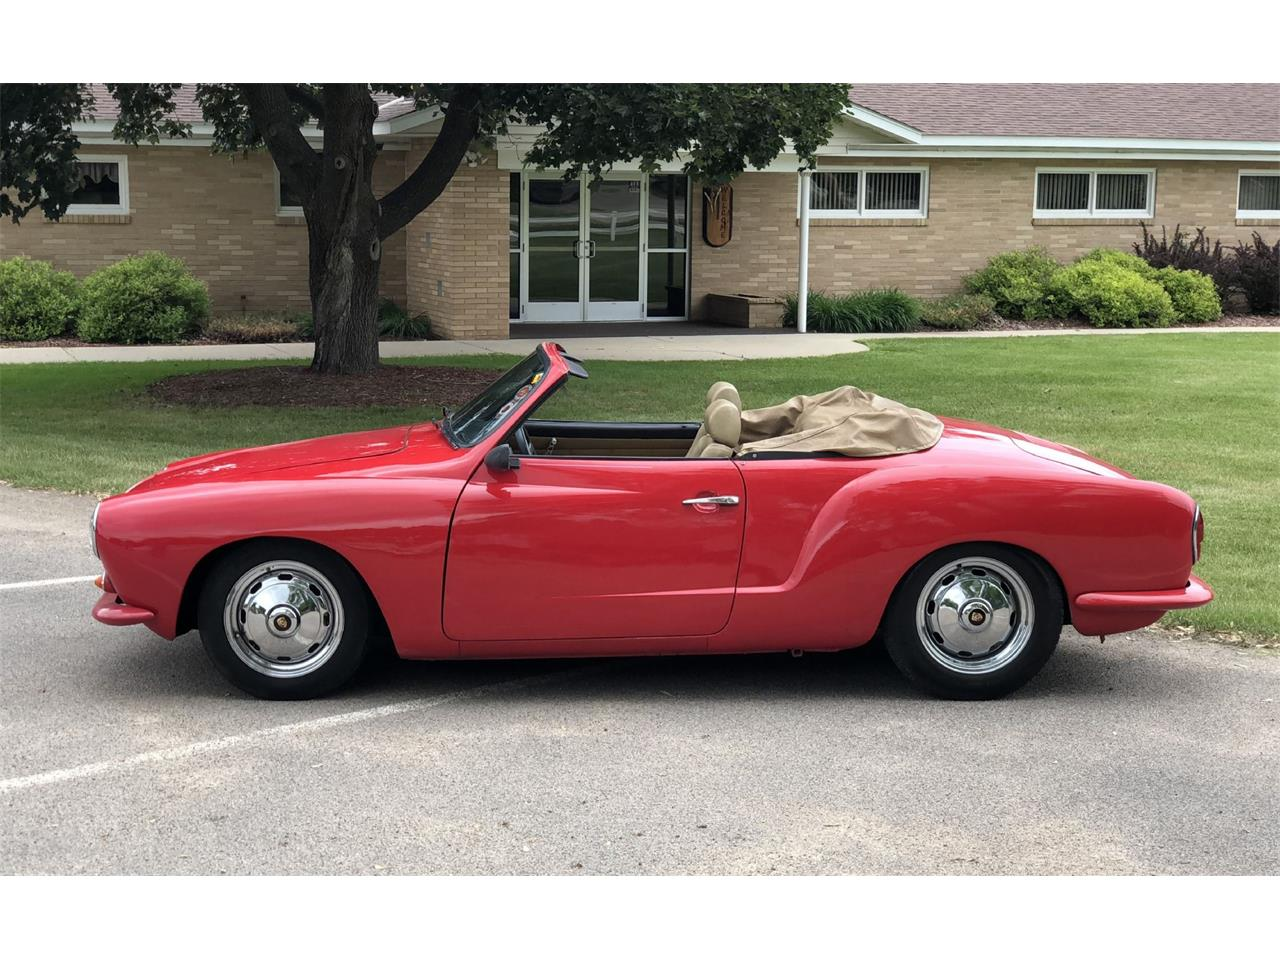 Large Picture of Classic 1972 Karmann Ghia located in Maple Lake Minnesota - $14,950.00 - NM7V